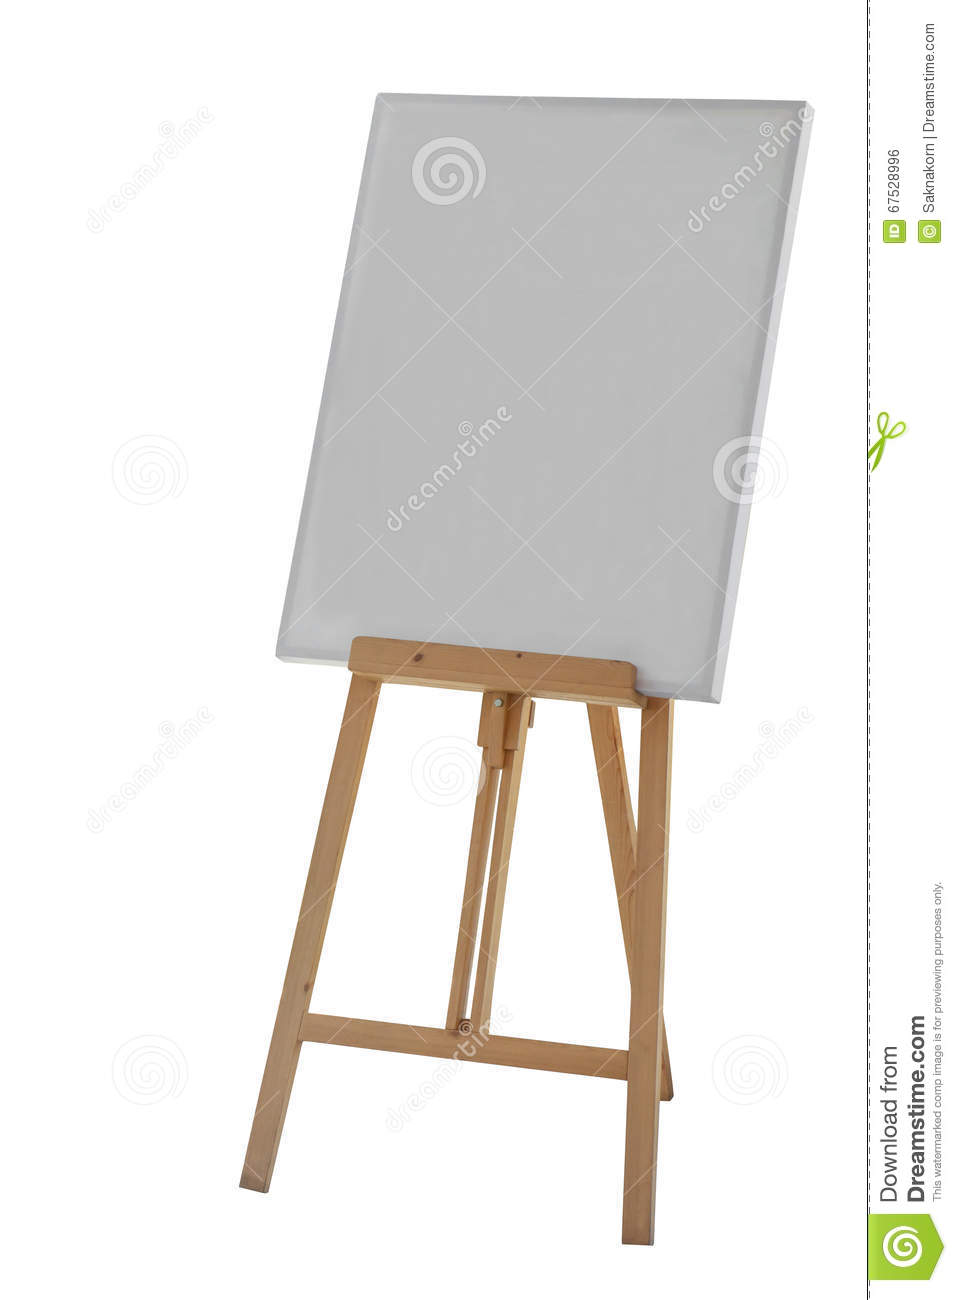 Painting stand wooden easel with blank canvas poster sign for Un stand